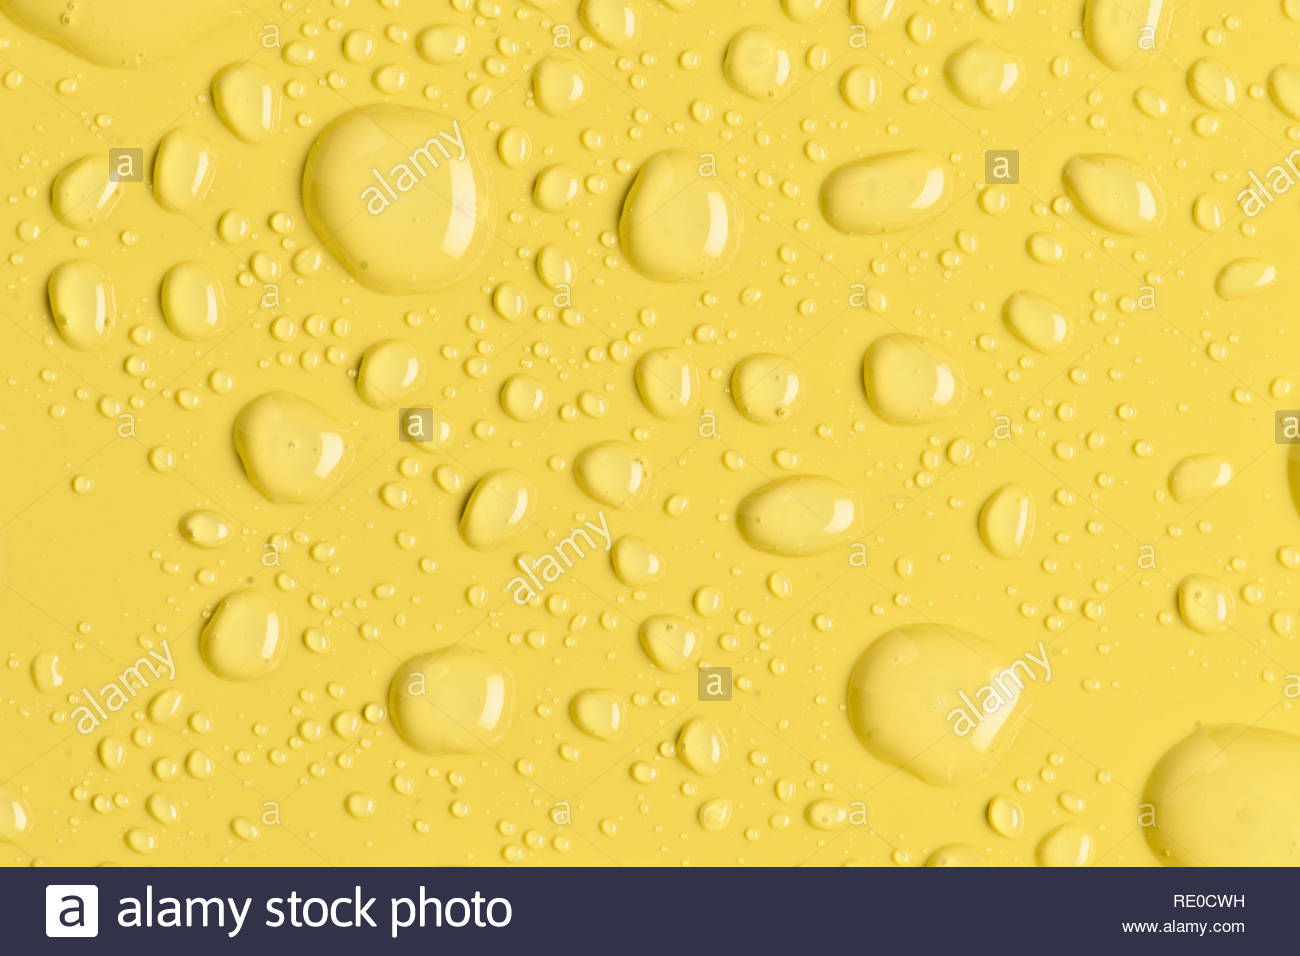 Bright water droplets on yellow synthetic material surface - Stock Image